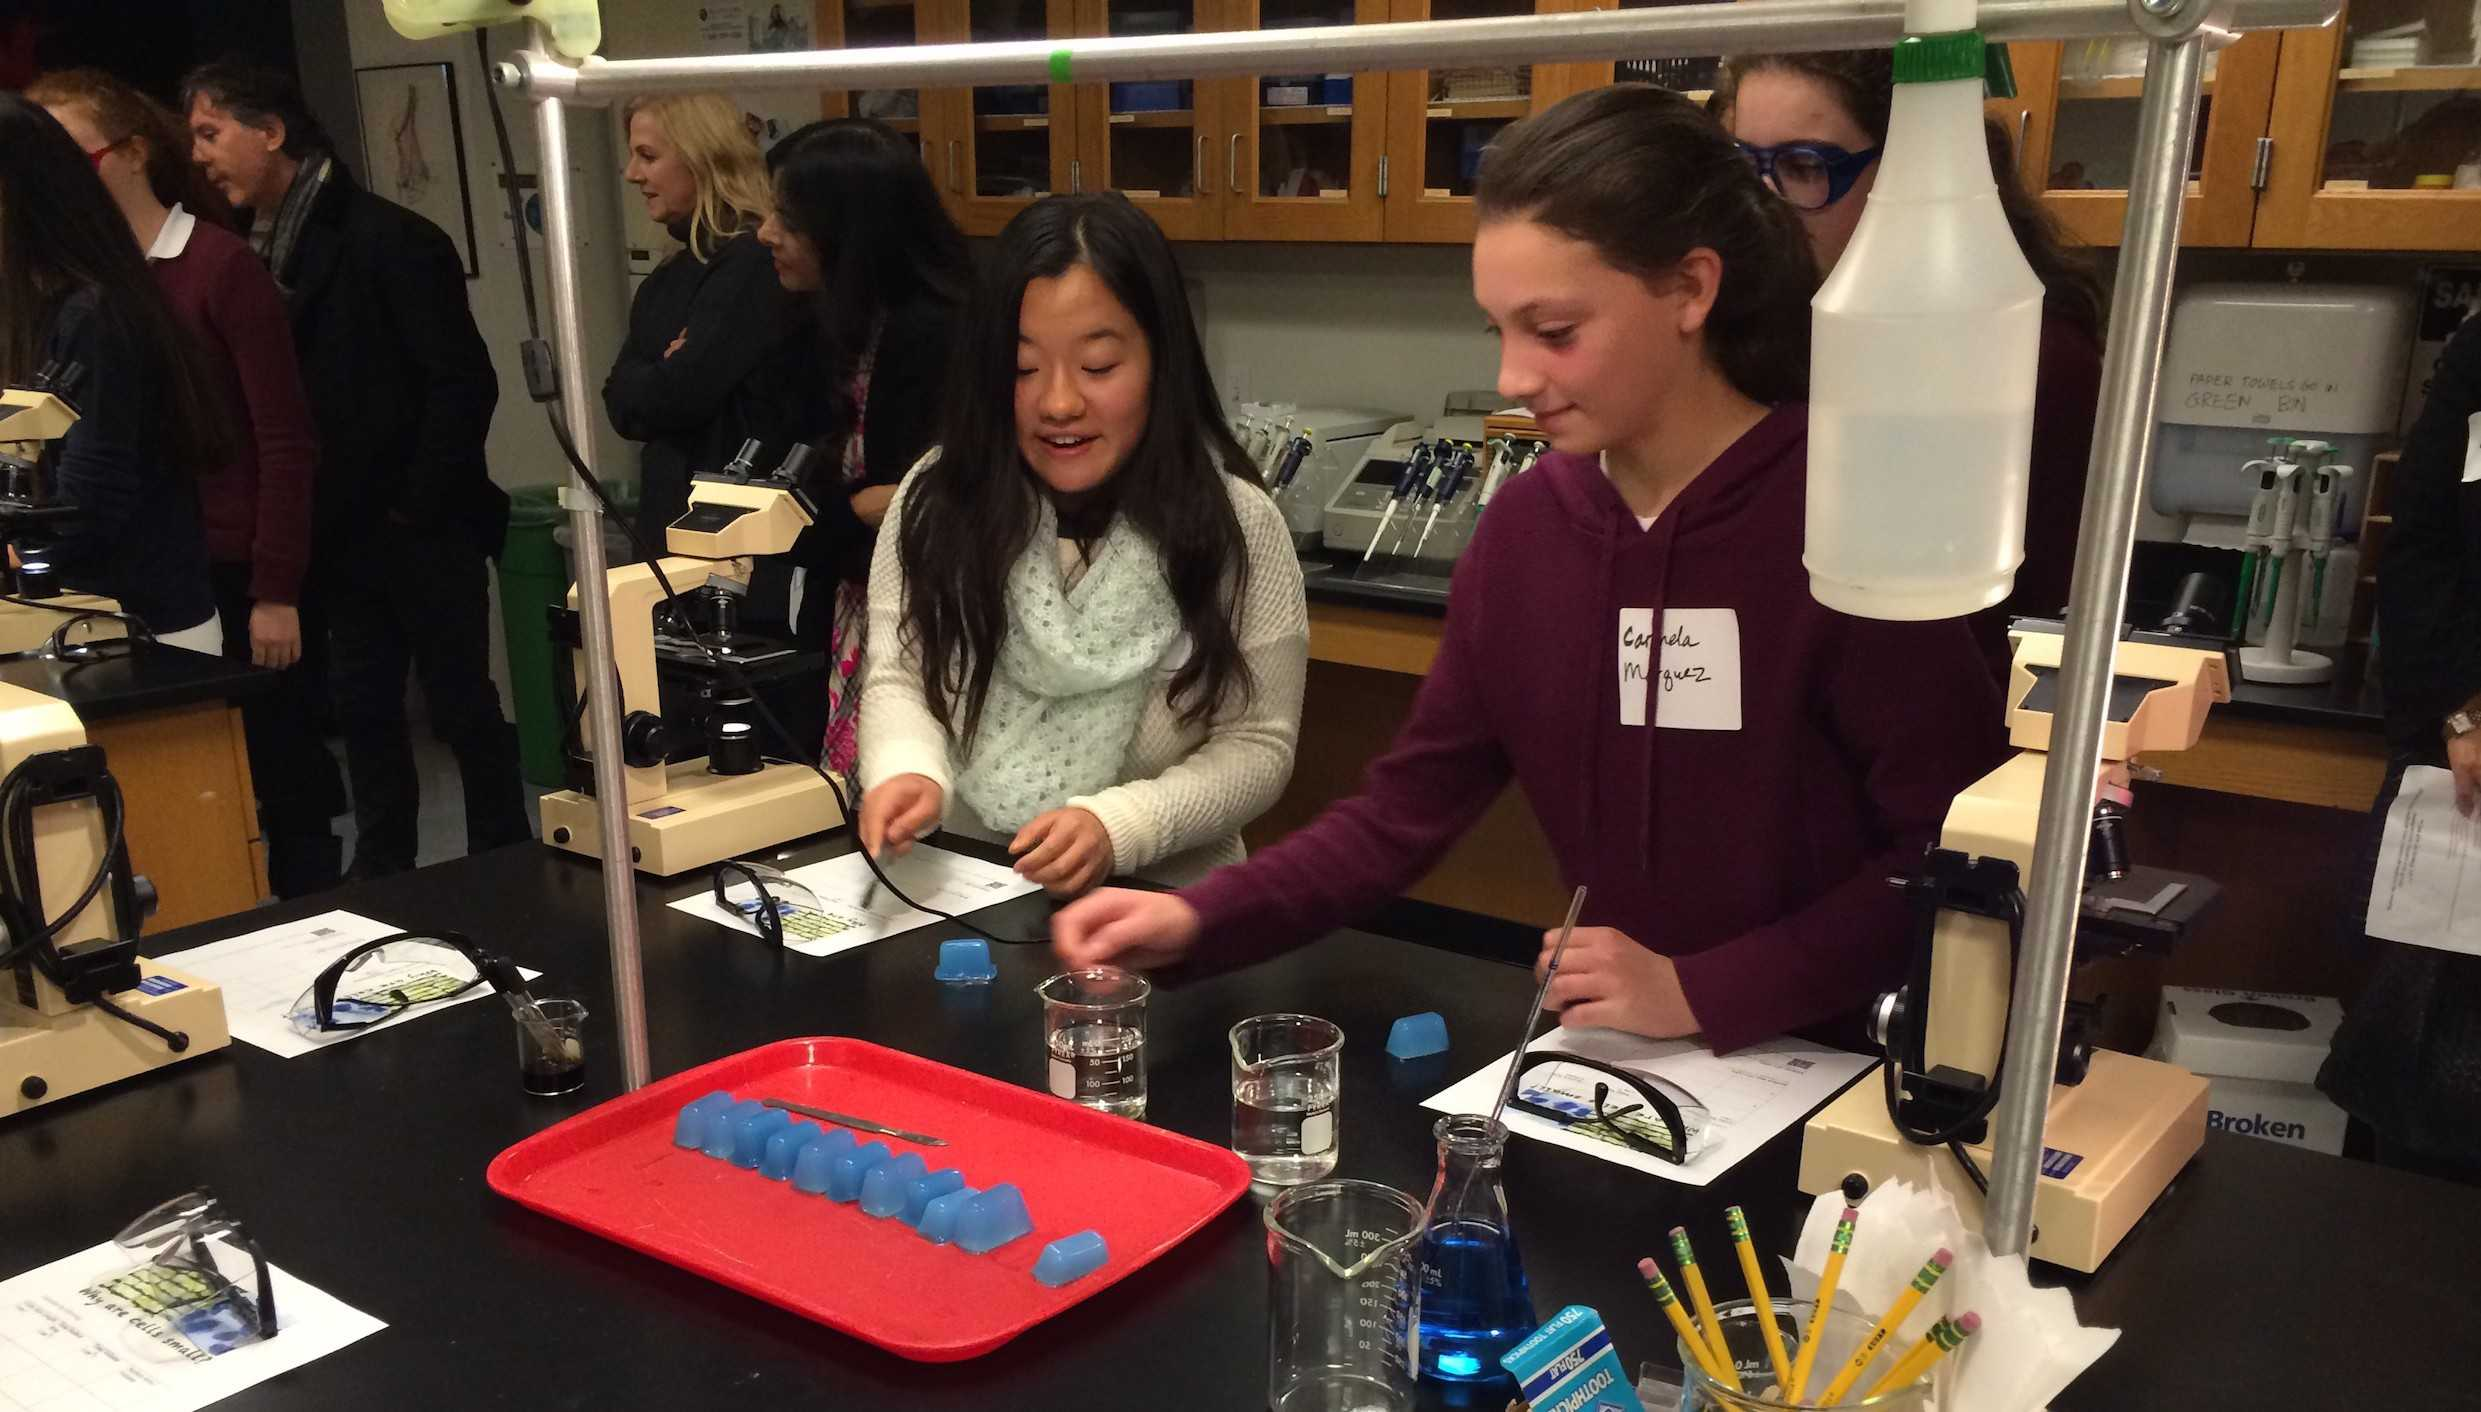 Prospective students pair up to participate in a chemistry experiment. Unlike last year where prospective students watched classes, the potential applicants were placed within the classroom instead.